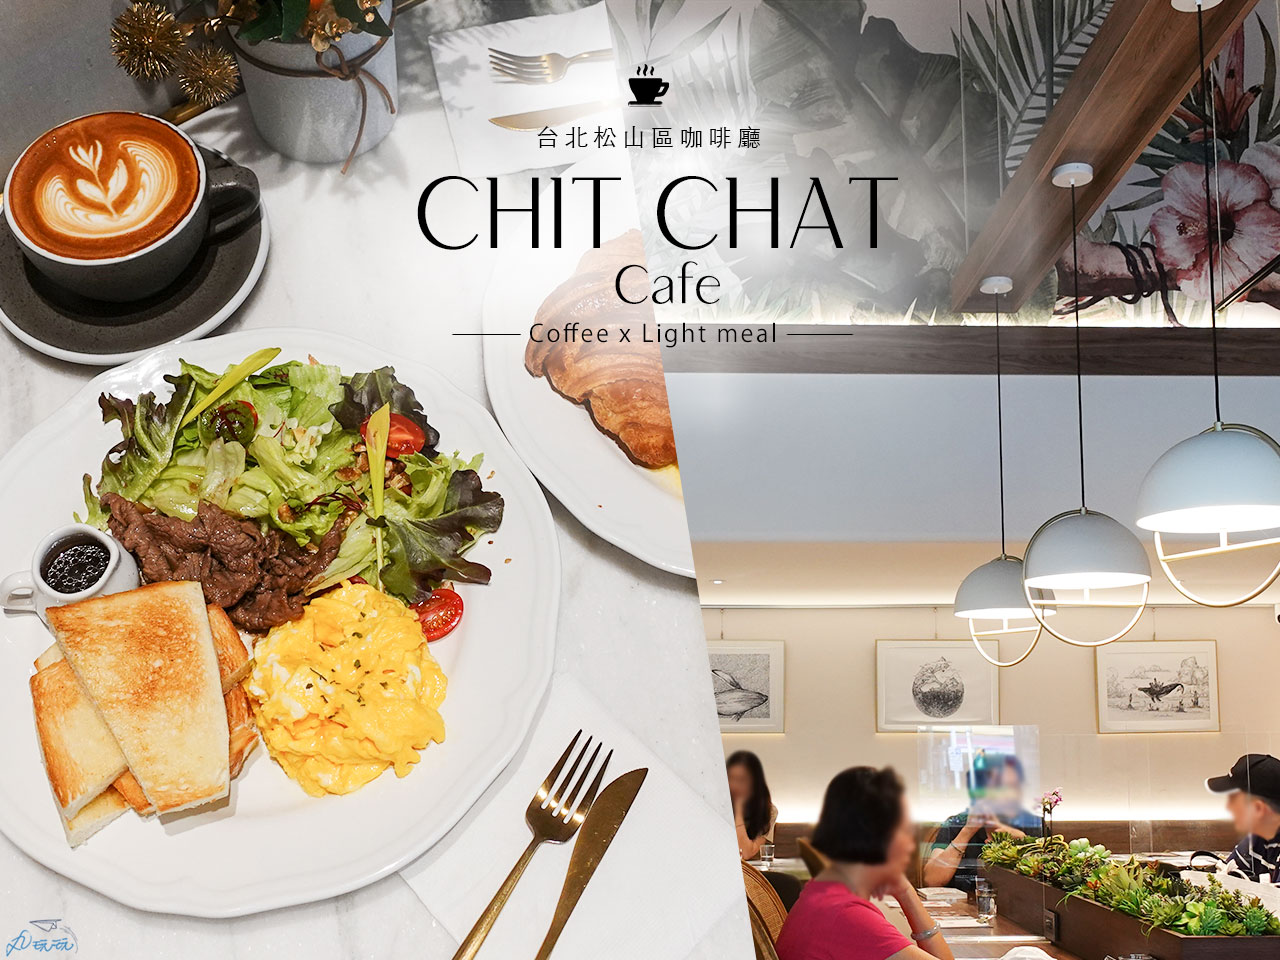 Read more about the article CHIT CHAT Cafe|南京三民咖啡廳 早午餐下午茶質感推薦